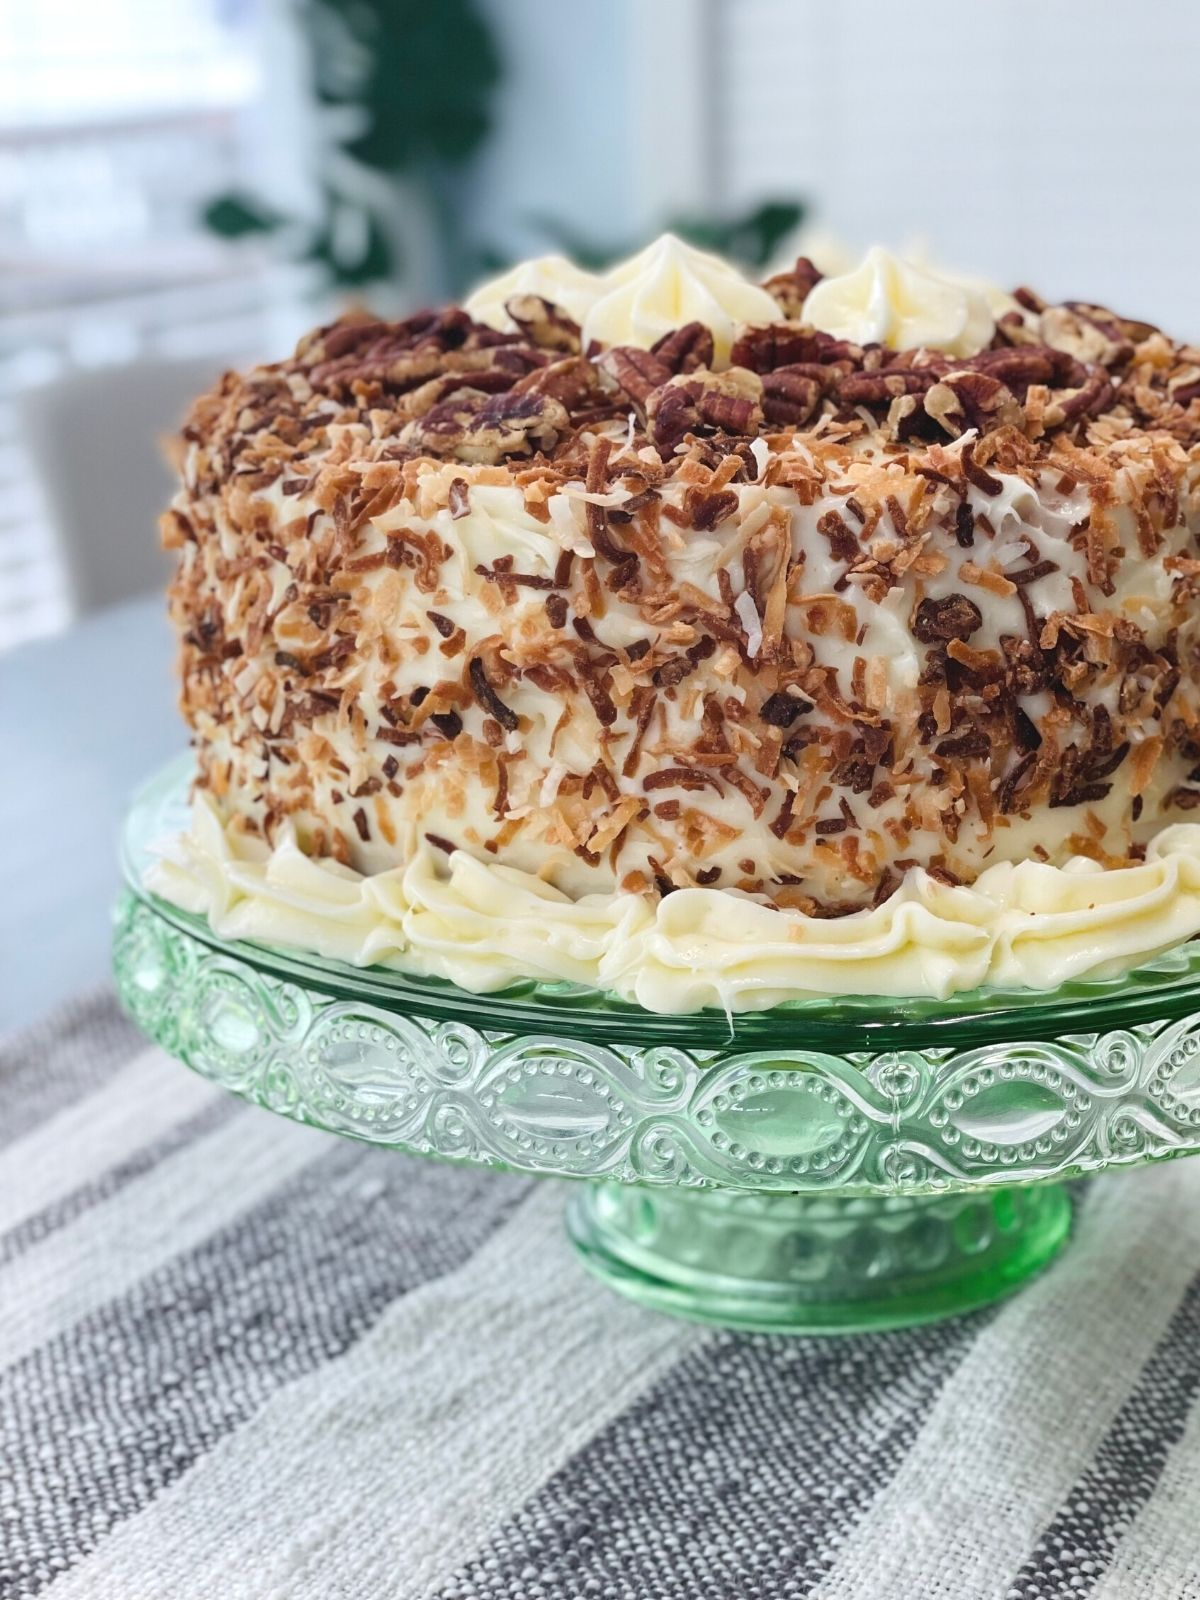 Round Italian cream cake covered in coconut and pecans on a vintage glass cake stand.